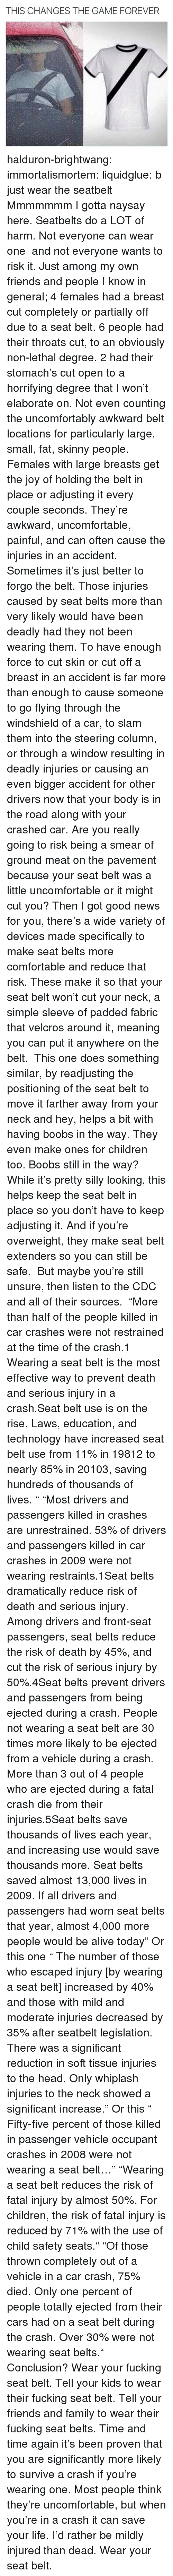 "Restrained: THIS CHANGES THE GAME FOREVER halduron-brightwang:  immortalismortem:  liquidglue:   b just wear the seatbelt   Mmmmmmm I gotta naysay here. Seatbelts do a LOT of harm. Not everyone can wear one  and not everyone wants to risk it. Just among my own friends and people I know in general; 4 females had a breast cut completely or partially off due to a seat belt. 6 people had their throats cut, to an obviously non-lethal degree. 2 had their stomach's cut open to a horrifying degree that I won't elaborate on. Not even counting the uncomfortably awkward belt locations for particularly large, small, fat, skinny people. Females with large breasts get the joy of holding the belt in place or adjusting it every couple seconds. They're awkward, uncomfortable, painful, and can often cause the injuries in an accident. Sometimes it's just better to forgo the belt.  Those injuries caused by seat belts more than very likely would have been deadly had they not been wearing them. To have enough force to cut skin or cut off a breast in an accident is far more than enough to cause someone to go flying through the windshield of a car, to slam them into the steering column, or through a window resulting in deadly injuries or causing an even bigger accident for other drivers now that your body is in the road along with your crashed car. Are you really going to risk being a smear of ground meat on the pavement because your seat belt was a little uncomfortable or it might cut you? Then I got good news for you, there's a wide variety of devices made specifically to make seat belts more comfortable and reduce that risk. These make it so that your seat belt won't cut your neck, a simple sleeve of padded fabric that velcros around it, meaning you can put it anywhere on the belt.  This one does something similar, by readjusting the positioning of the seat belt to move it farther away from your neck and hey, helps a bit with having boobs in the way. They even make ones for children too. Boobs still in the way? While it's pretty silly looking, this helps keep the seat belt in place so you don't have to keep adjusting it. And if you're overweight, they make seat belt extenders so you can still be safe.  But maybe you're still unsure, then listen to the CDC and all of their sources.  ""More than half of the people killed in car crashes were not restrained at the time of the crash.1 Wearing a seat belt is the most effective way to prevent death and serious injury in a crash.Seat belt use is on the rise. Laws, education, and technology have increased seat belt use from 11% in 19812 to nearly 85% in 20103, saving hundreds of thousands of lives. "" ""Most drivers and passengers killed in crashes are unrestrained. 53% of drivers and passengers killed in car crashes in 2009 were not wearing restraints.1Seat belts dramatically reduce risk of death and serious injury. Among drivers and front-seat passengers, seat belts reduce the risk of death by 45%, and cut the risk of serious injury by 50%.4Seat belts prevent drivers and passengers from being ejected during a crash. People not wearing a seat belt are 30 times more likely to be ejected from a vehicle during a crash. More than 3 out of 4 people who are ejected during a fatal crash die from their injuries.5Seat belts save thousands of lives each year, and increasing use would save thousands more. Seat belts saved almost 13,000 lives in 2009. If all drivers and passengers had worn seat belts that year, almost 4,000 more people would be alive today"" Or this one ""   The number of those who escaped injury [by wearing a seat belt] increased by 40% and those with mild and moderate injuries decreased by 35% after seatbelt legislation. There was a significant reduction in soft tissue injuries to the head. Only whiplash injuries to the neck showed a significant increase."" Or this ""  Fifty-five percent of those killed in passenger vehicle occupant crashes in 2008 were not wearing a seat belt…"" ""Wearing a seat belt reduces the risk of fatal injury by almost 50%. For children, the risk of fatal injury is reduced by 71% with the use of child safety seats."" ""Of those thrown completely out of a vehicle in a car crash, 75% died. Only one percent of people totally ejected from their cars had on a seat belt during the crash. Over 30% were not wearing seat belts."" Conclusion? Wear your fucking seat belt. Tell your kids to wear their fucking seat belt. Tell your friends and family to wear their fucking seat belts. Time and time again it's been proven that you are significantly more likely to survive a crash if you're wearing one. Most people think they're uncomfortable, but when you're in a crash it can save your life. I'd rather be mildly injured than dead. Wear your seat belt."